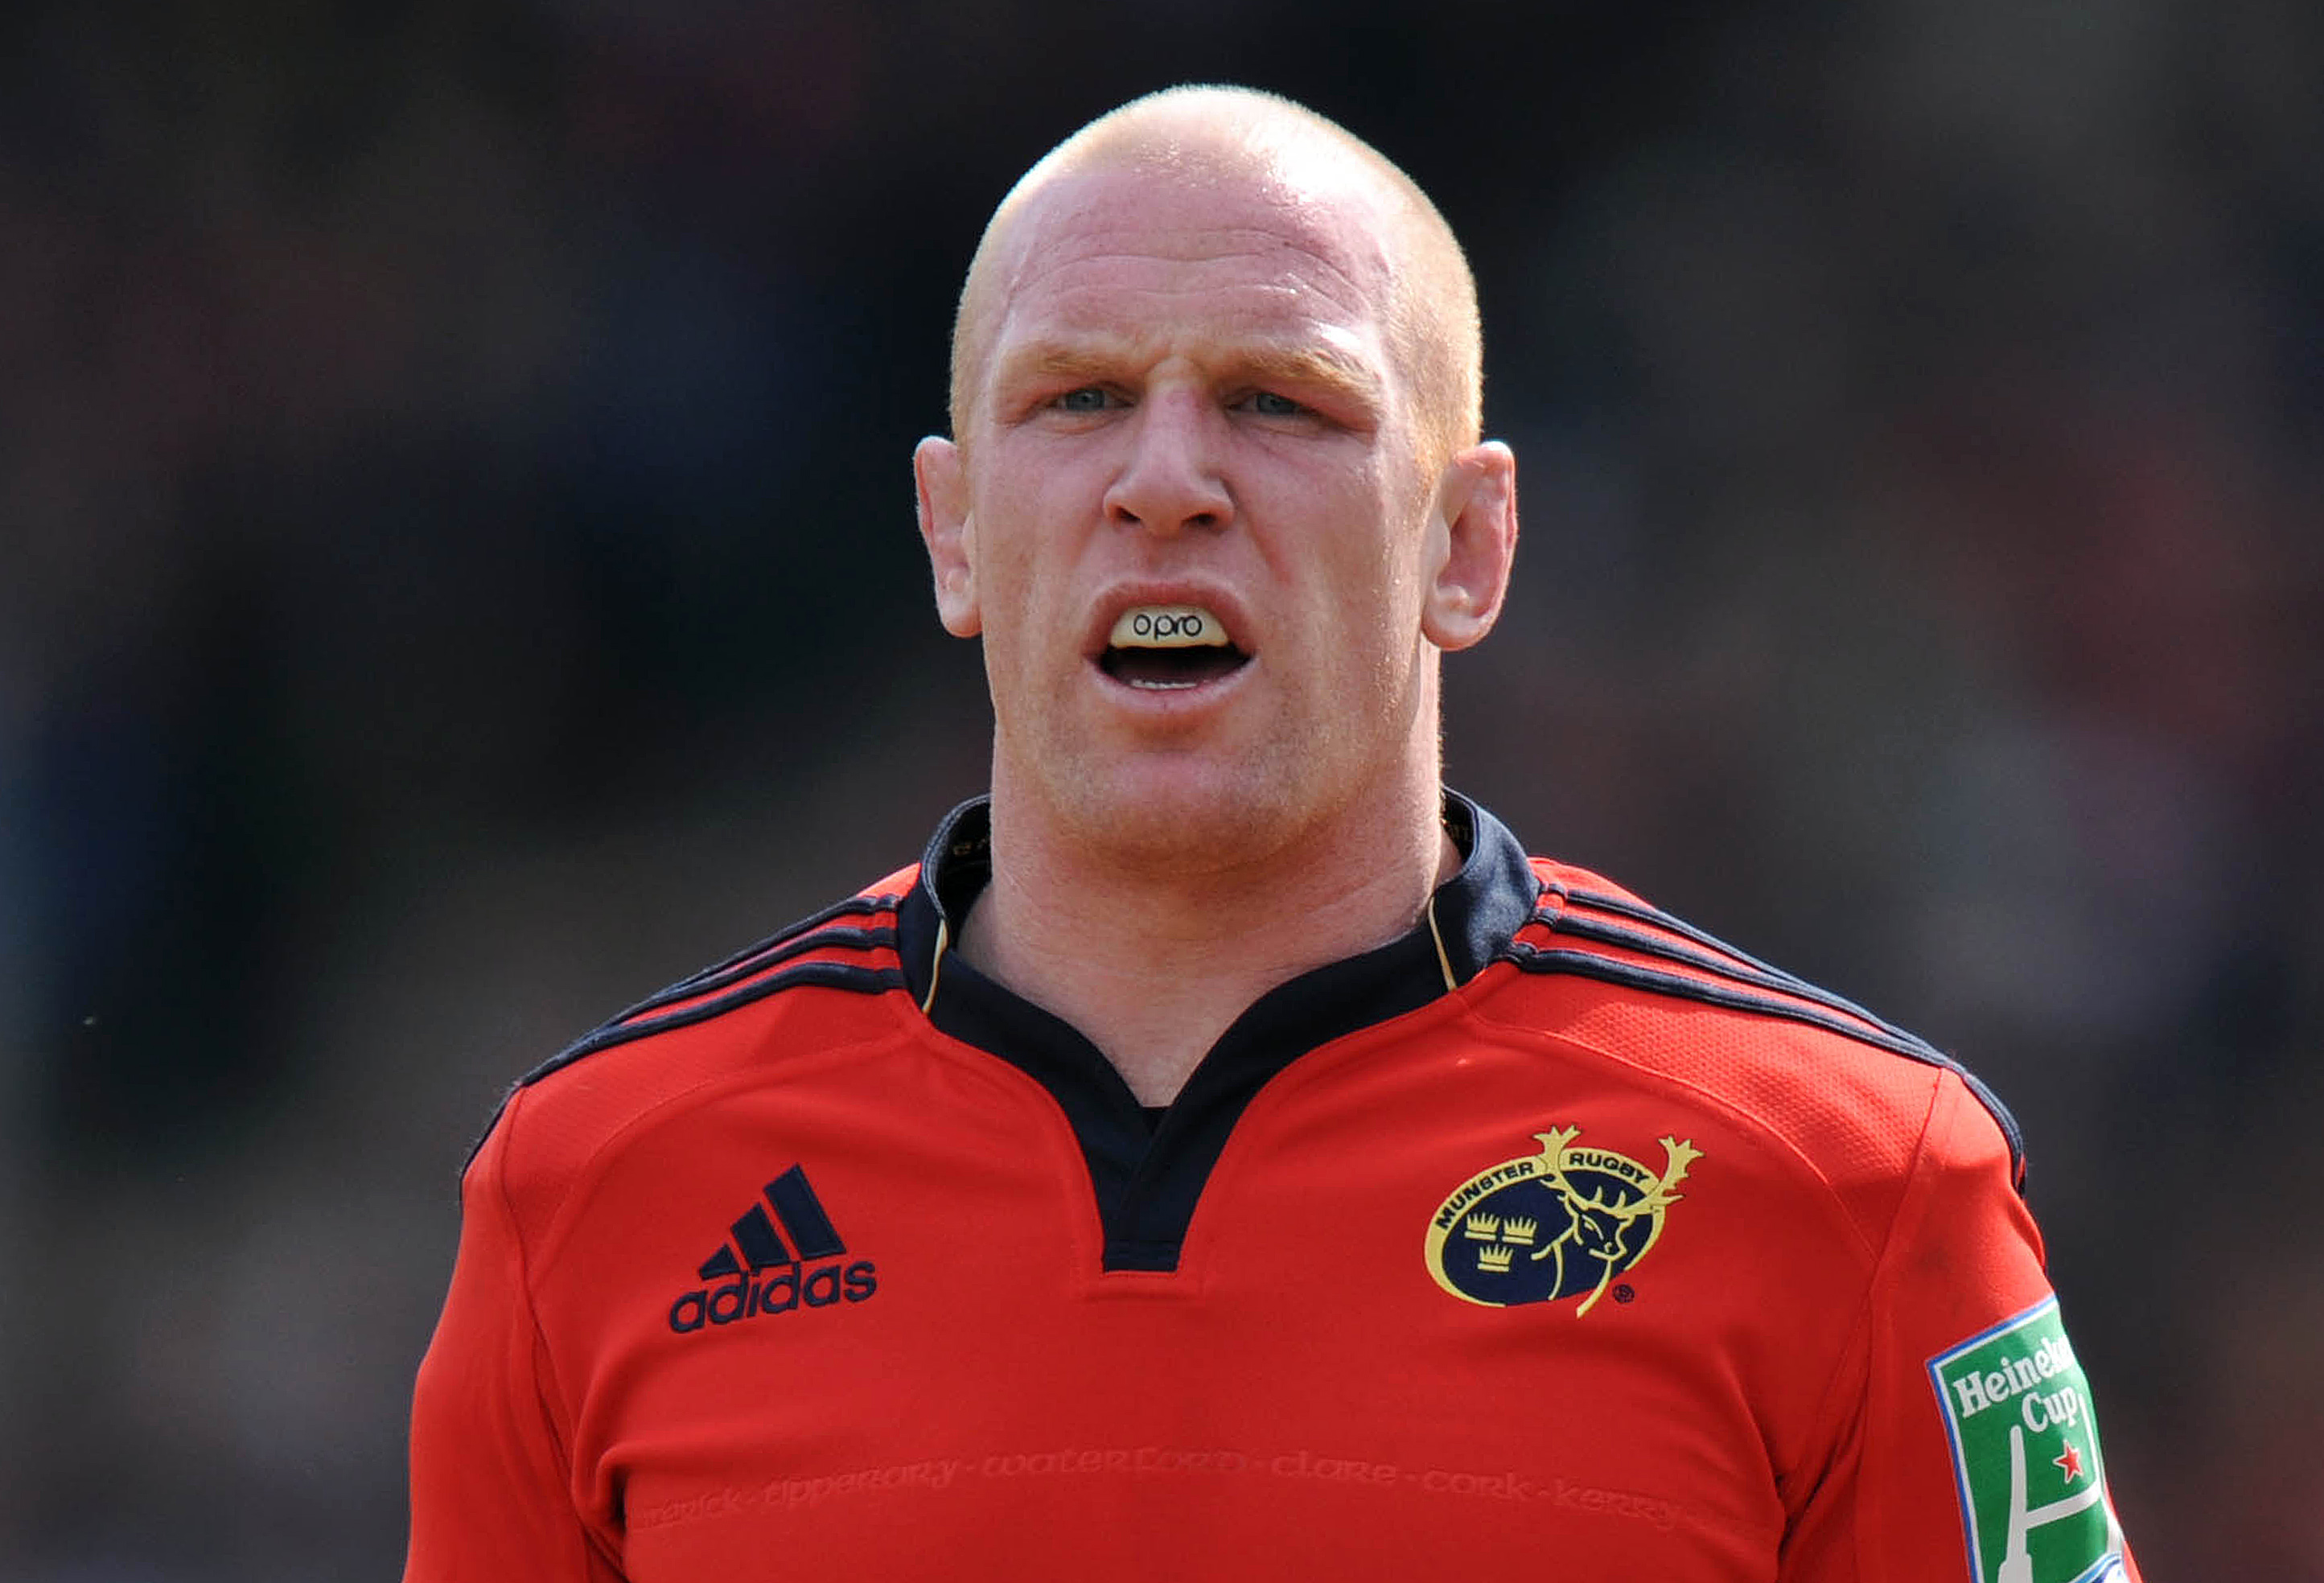 Michael Lynagh backs Paul O'Connell to beat Sam Warburton to Lions captaincy